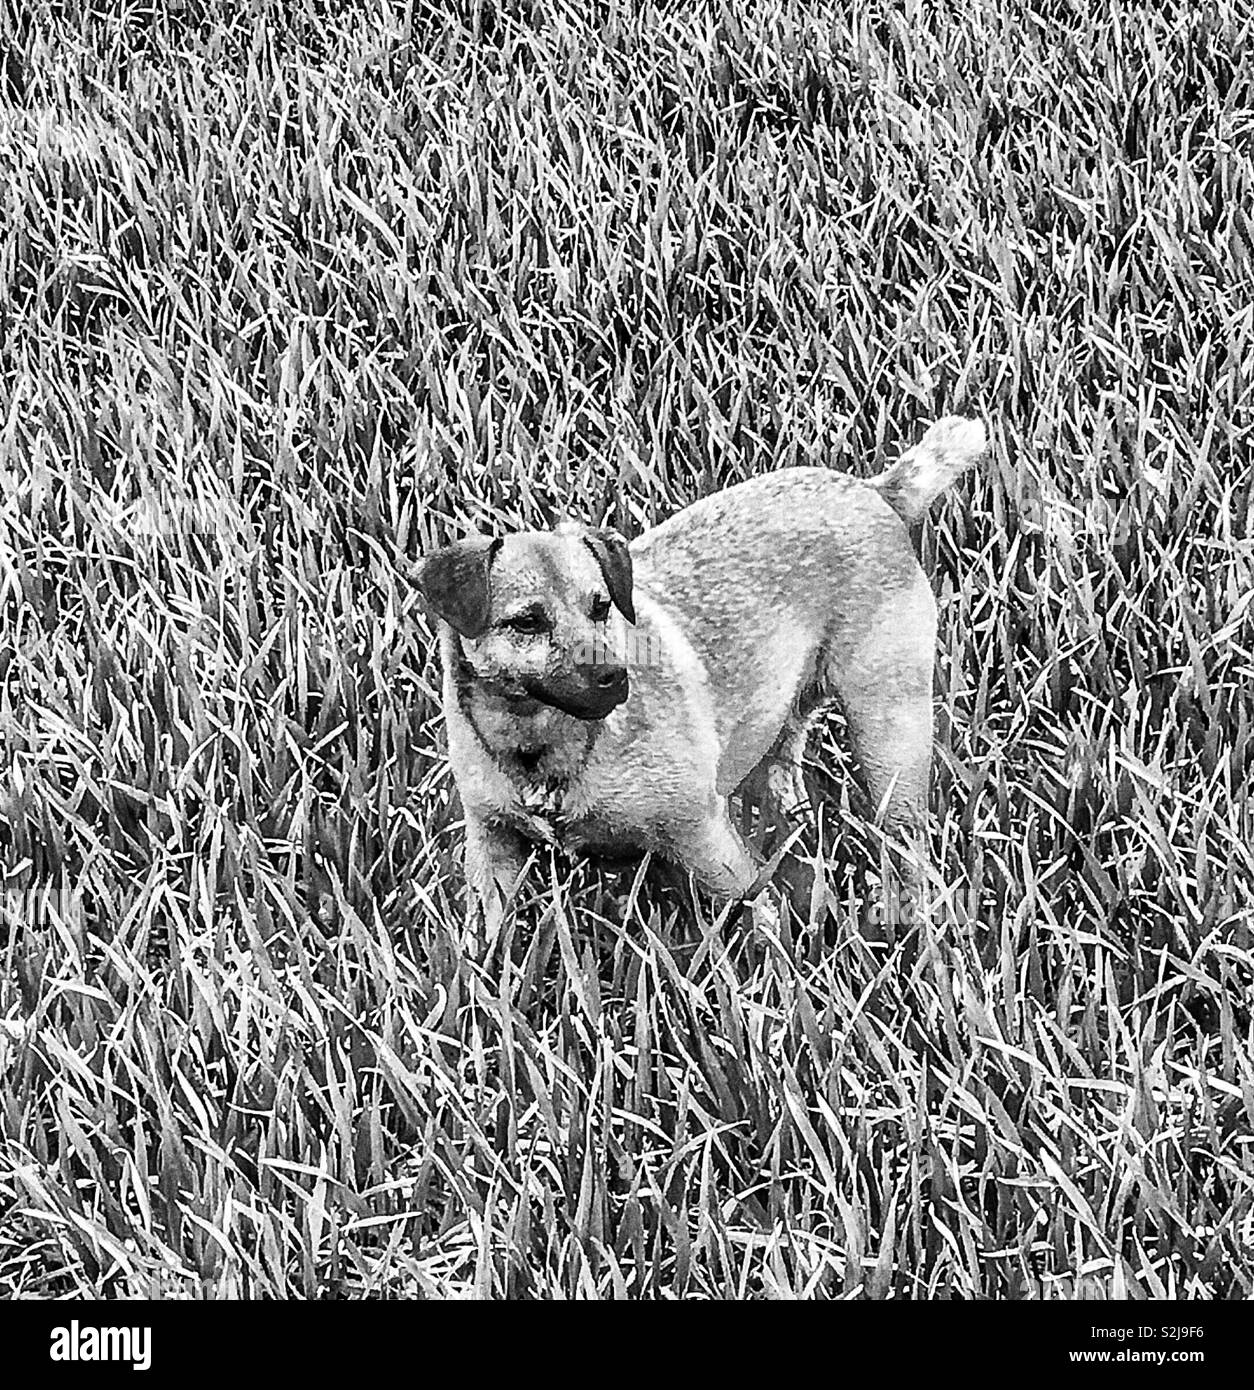 Black and white photo of small terrier dog in winter wheat field. Kent, England. March 2019. - Stock Image